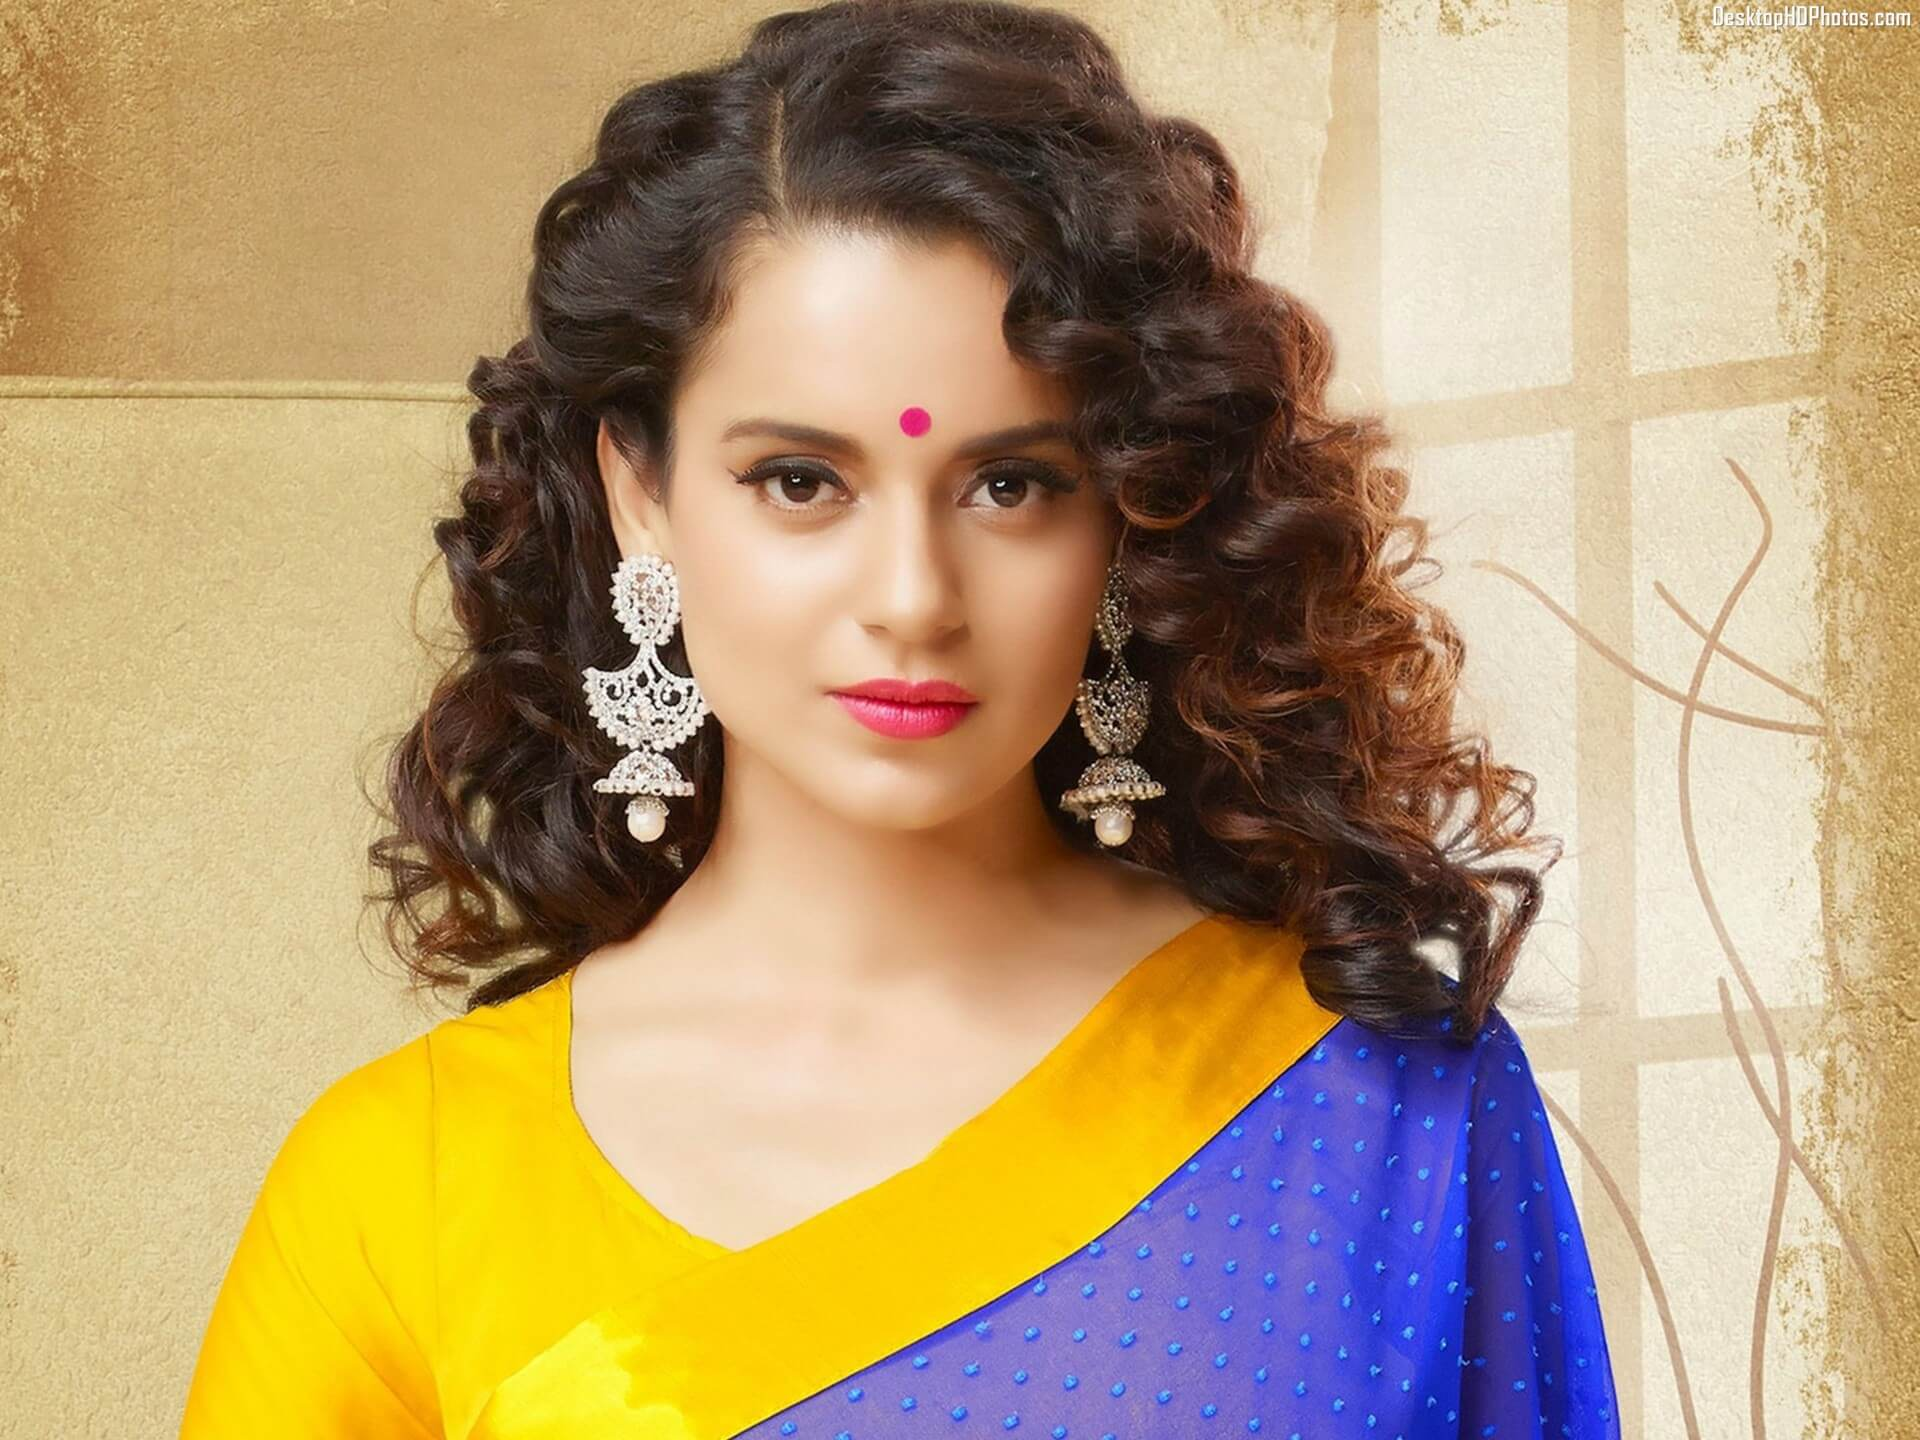 Kangana Ranaut Age, Sister, Image, Latest News, Net Worth, Biography, Husband, Height, Awards, Photos, Date Of Birth, Twitter, Instagram, Wiki (20)